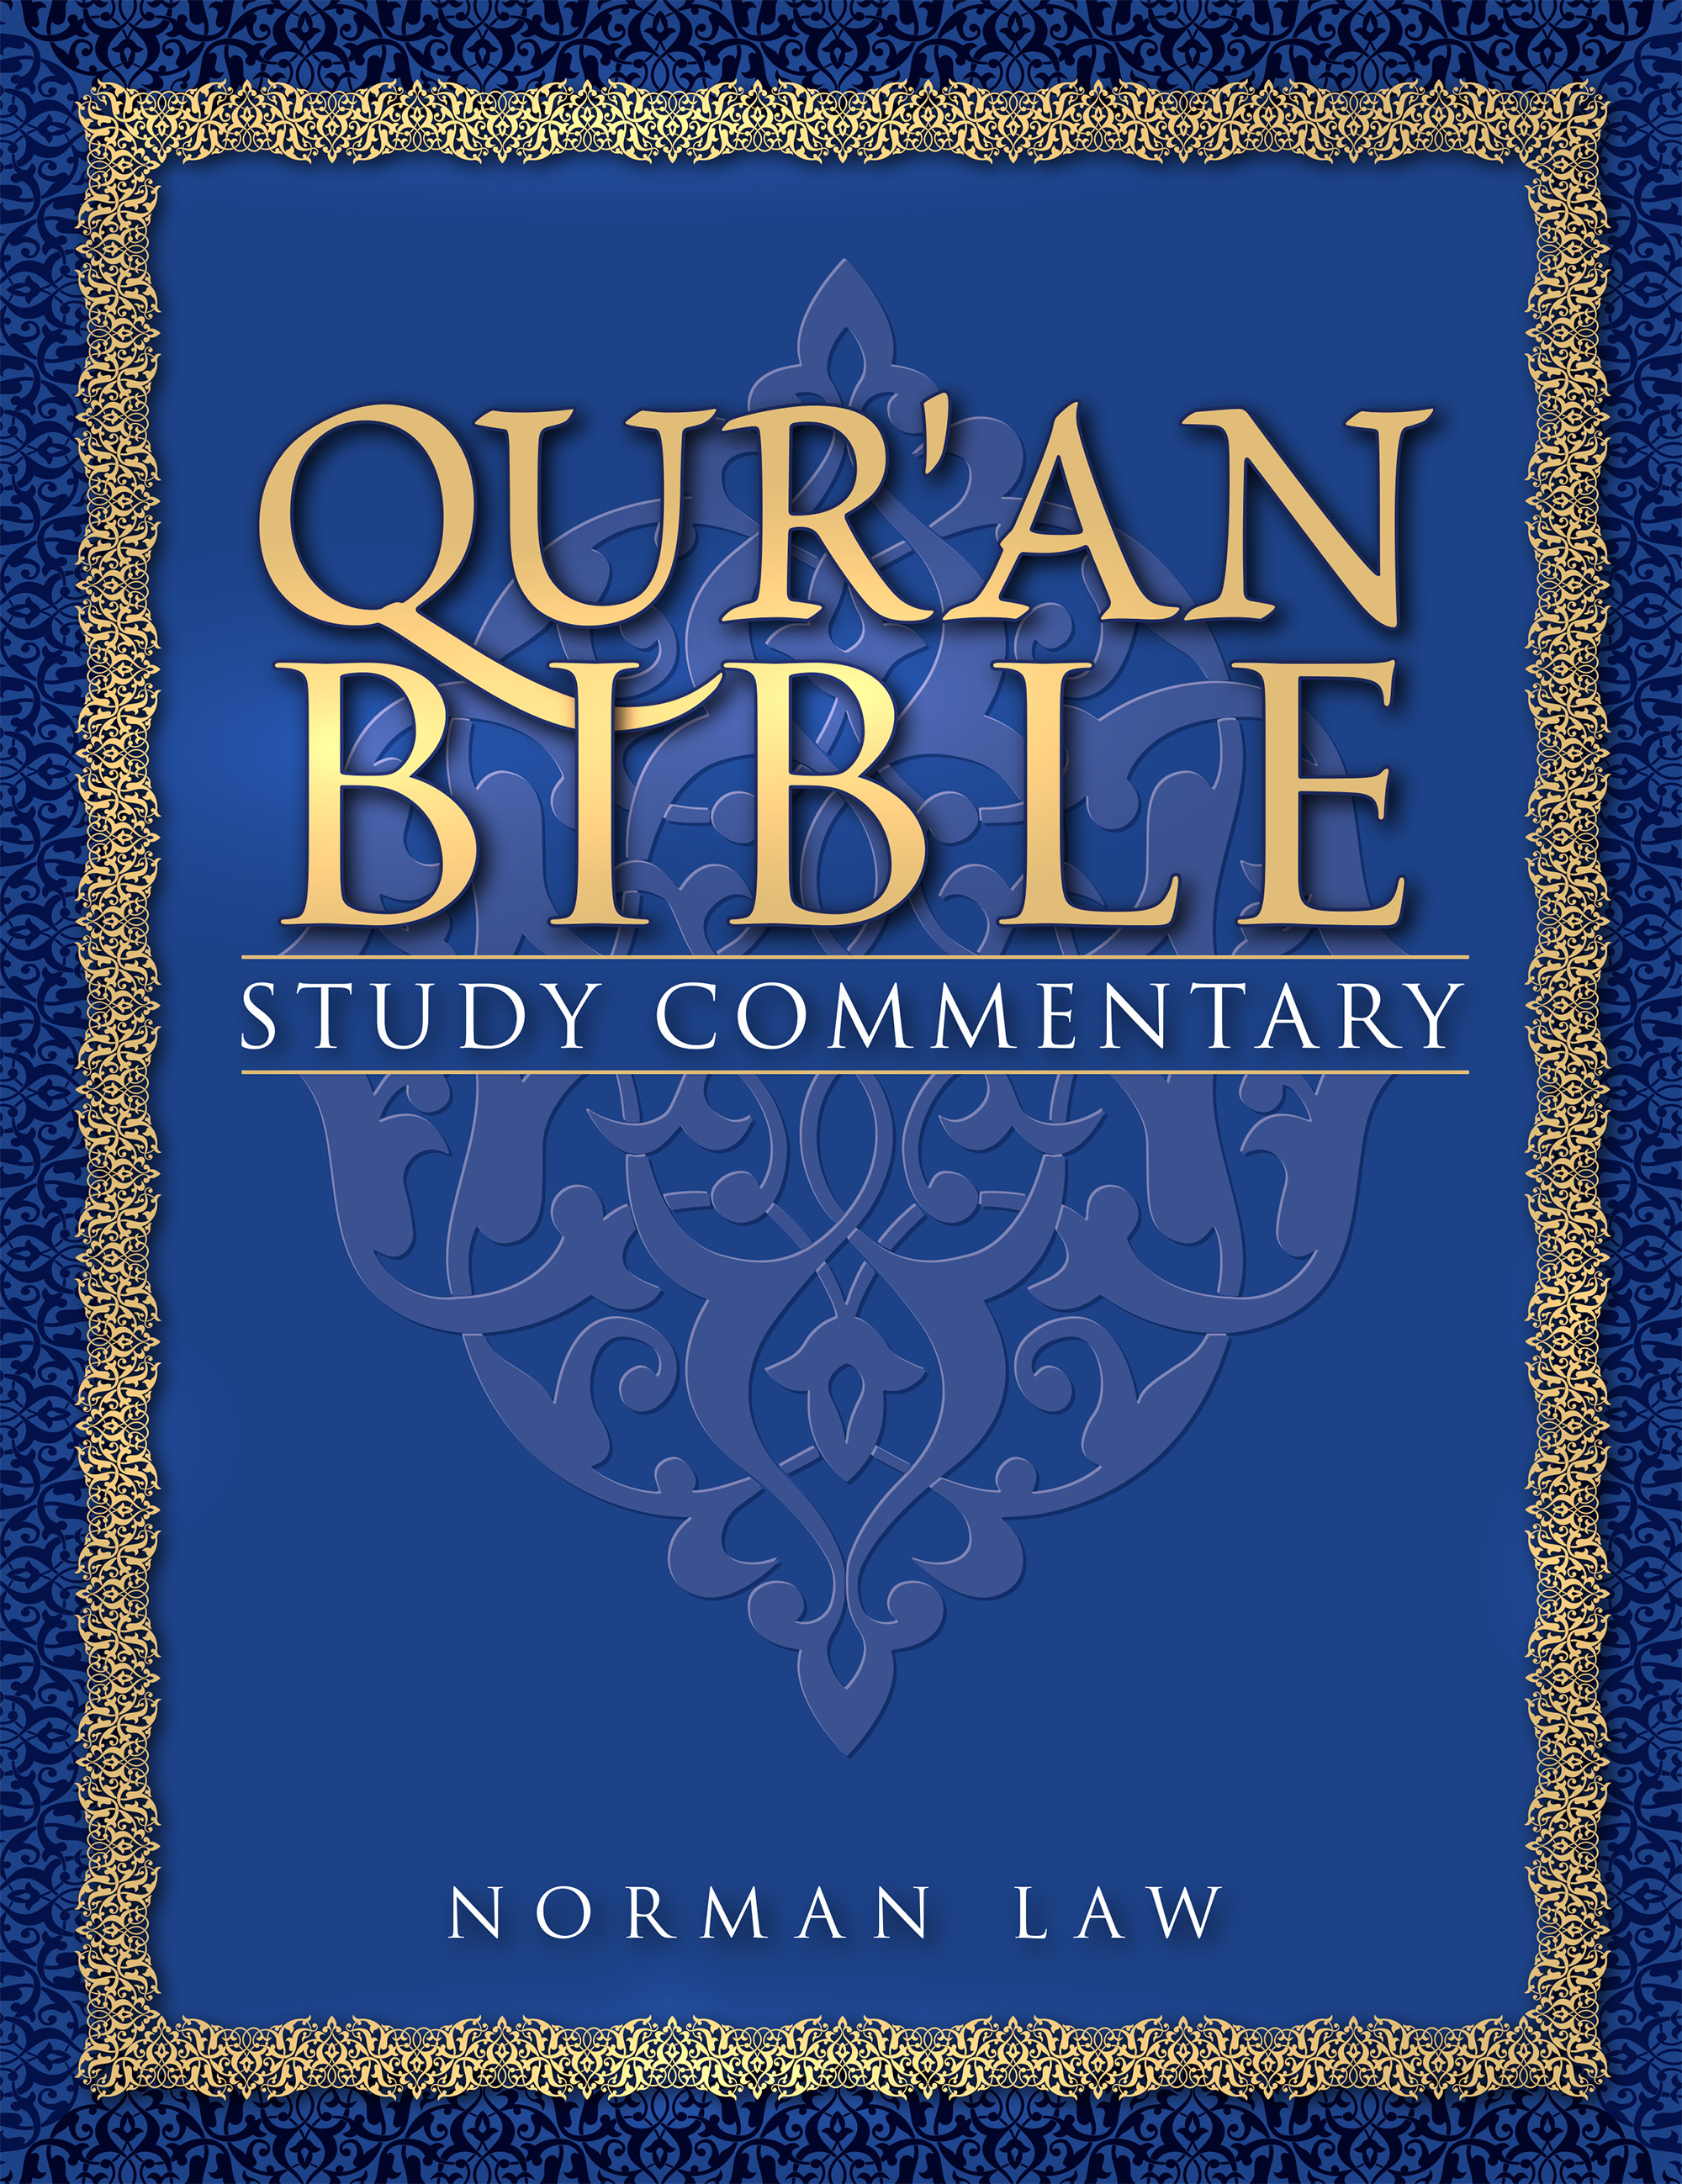 QUR'AN BIBLE STUDY COMMENTARY